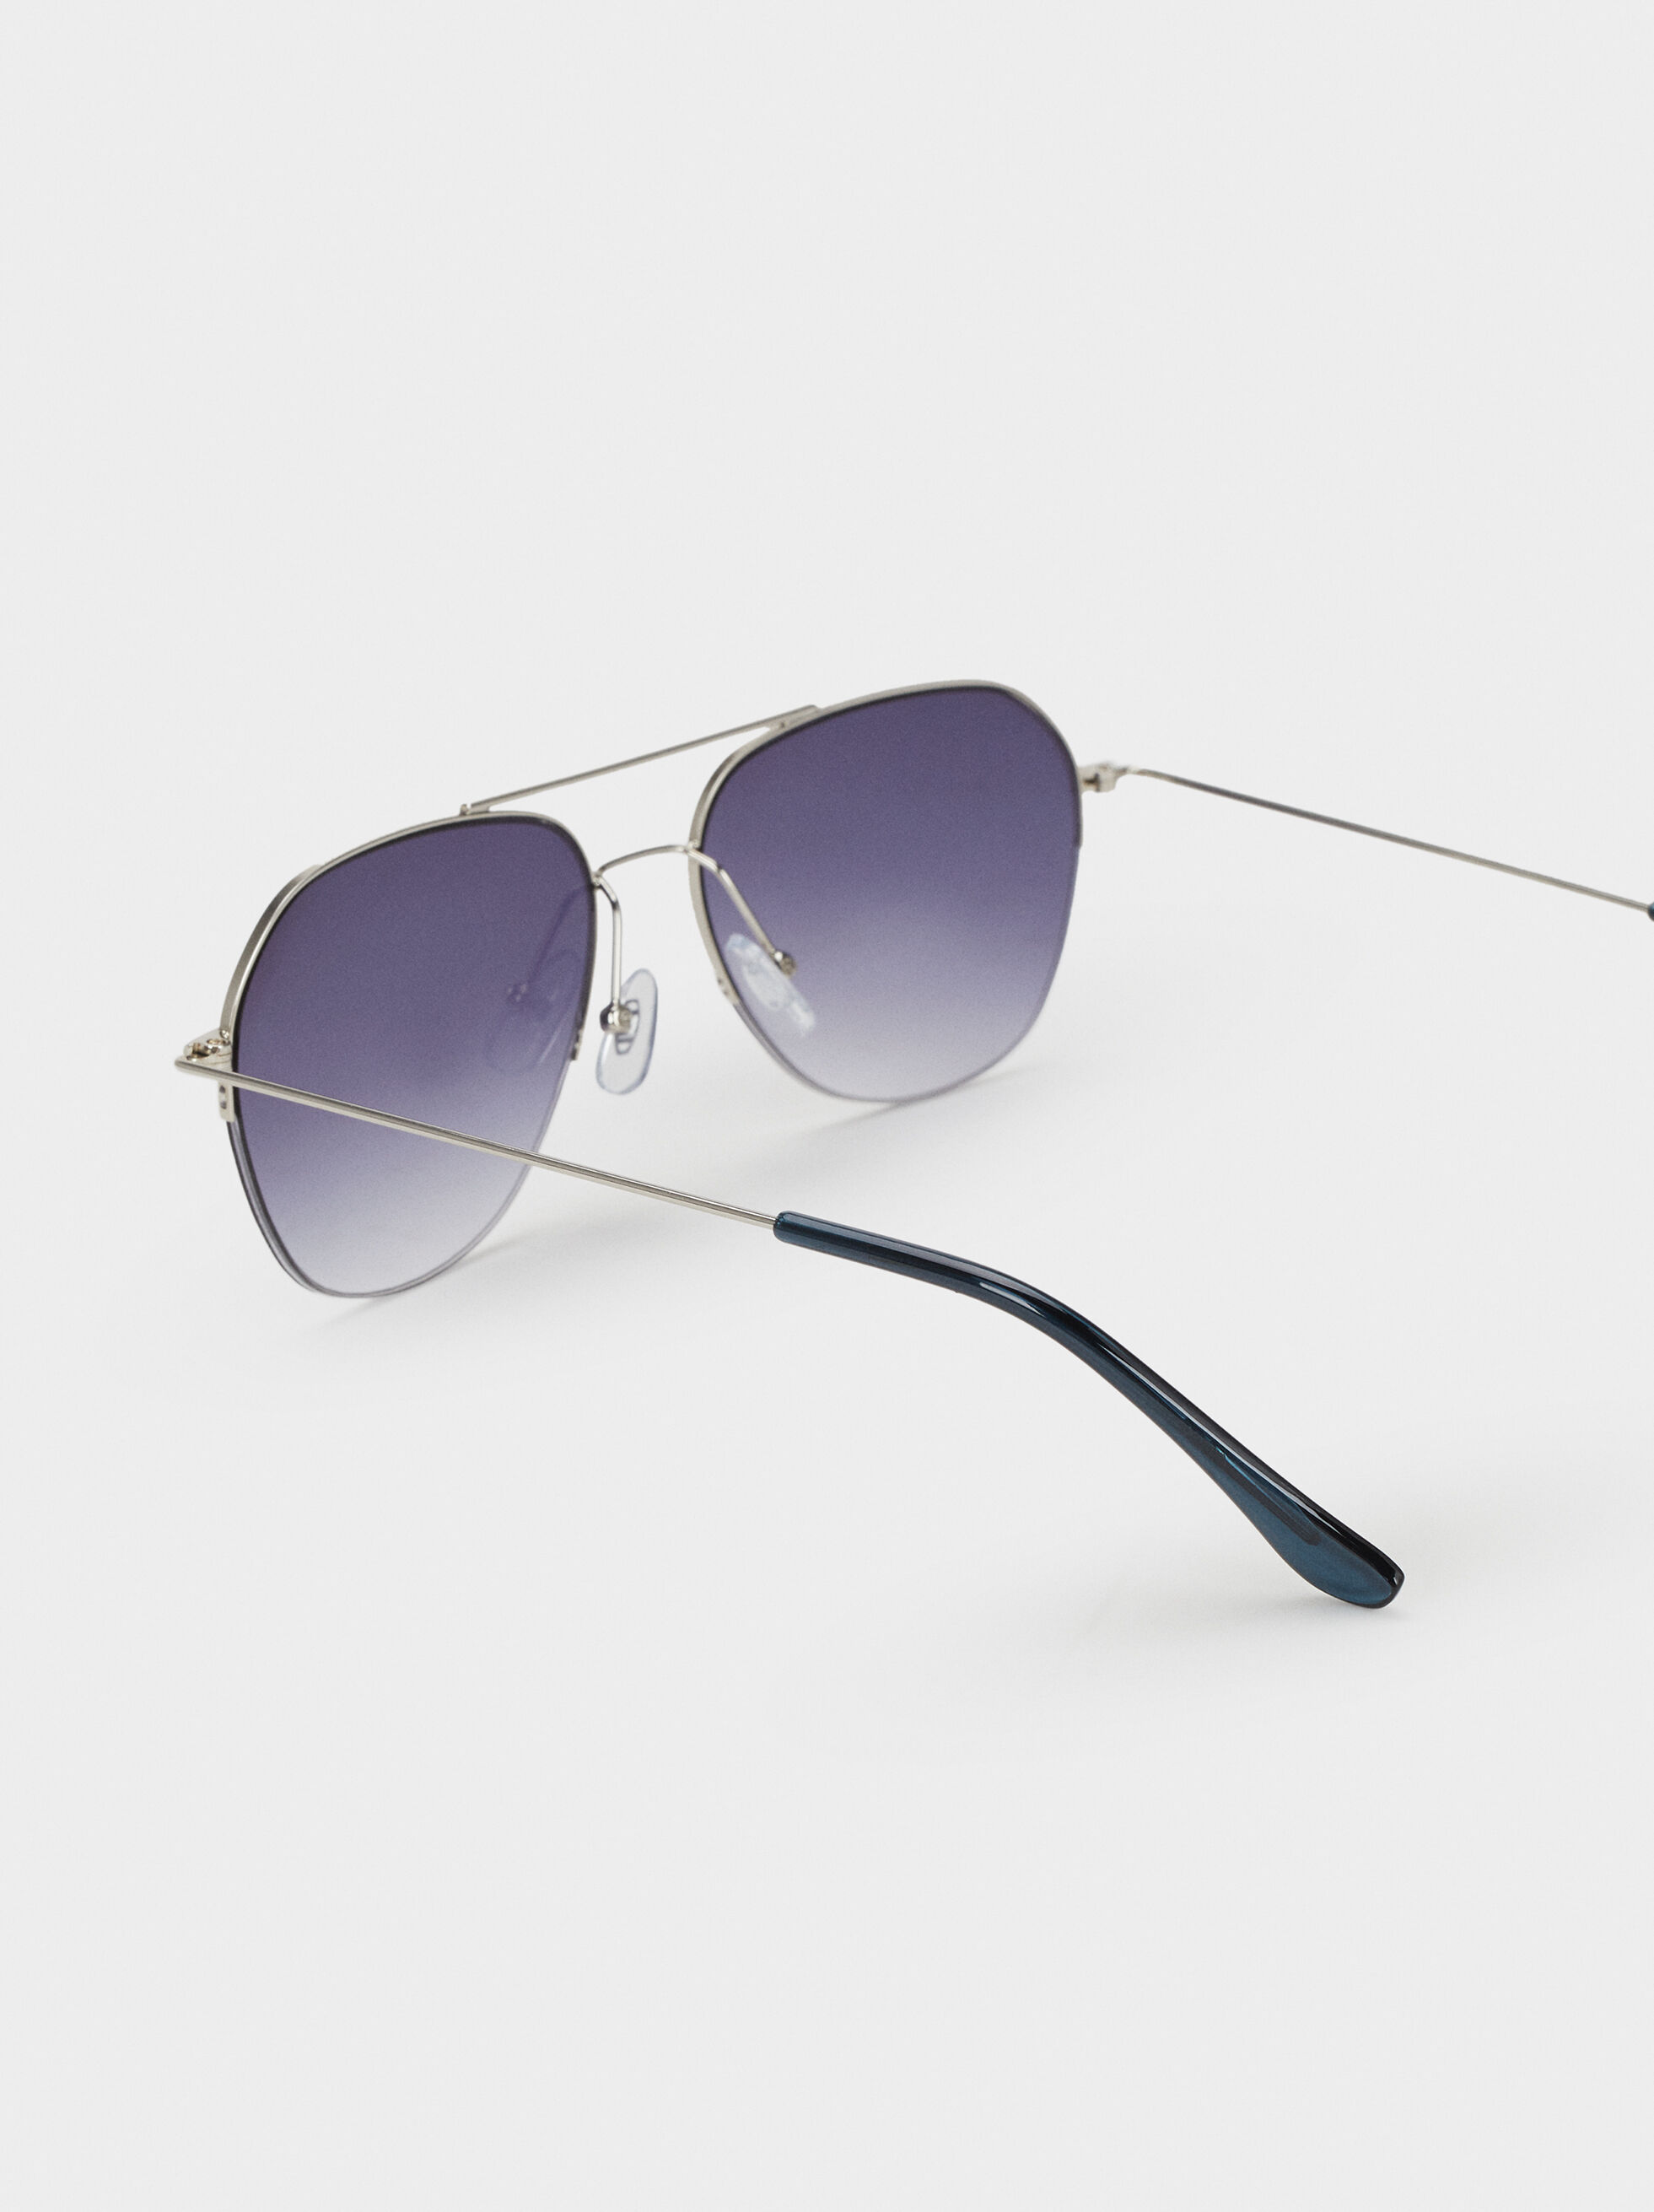 Aviator Sunglasses, Silver, hi-res